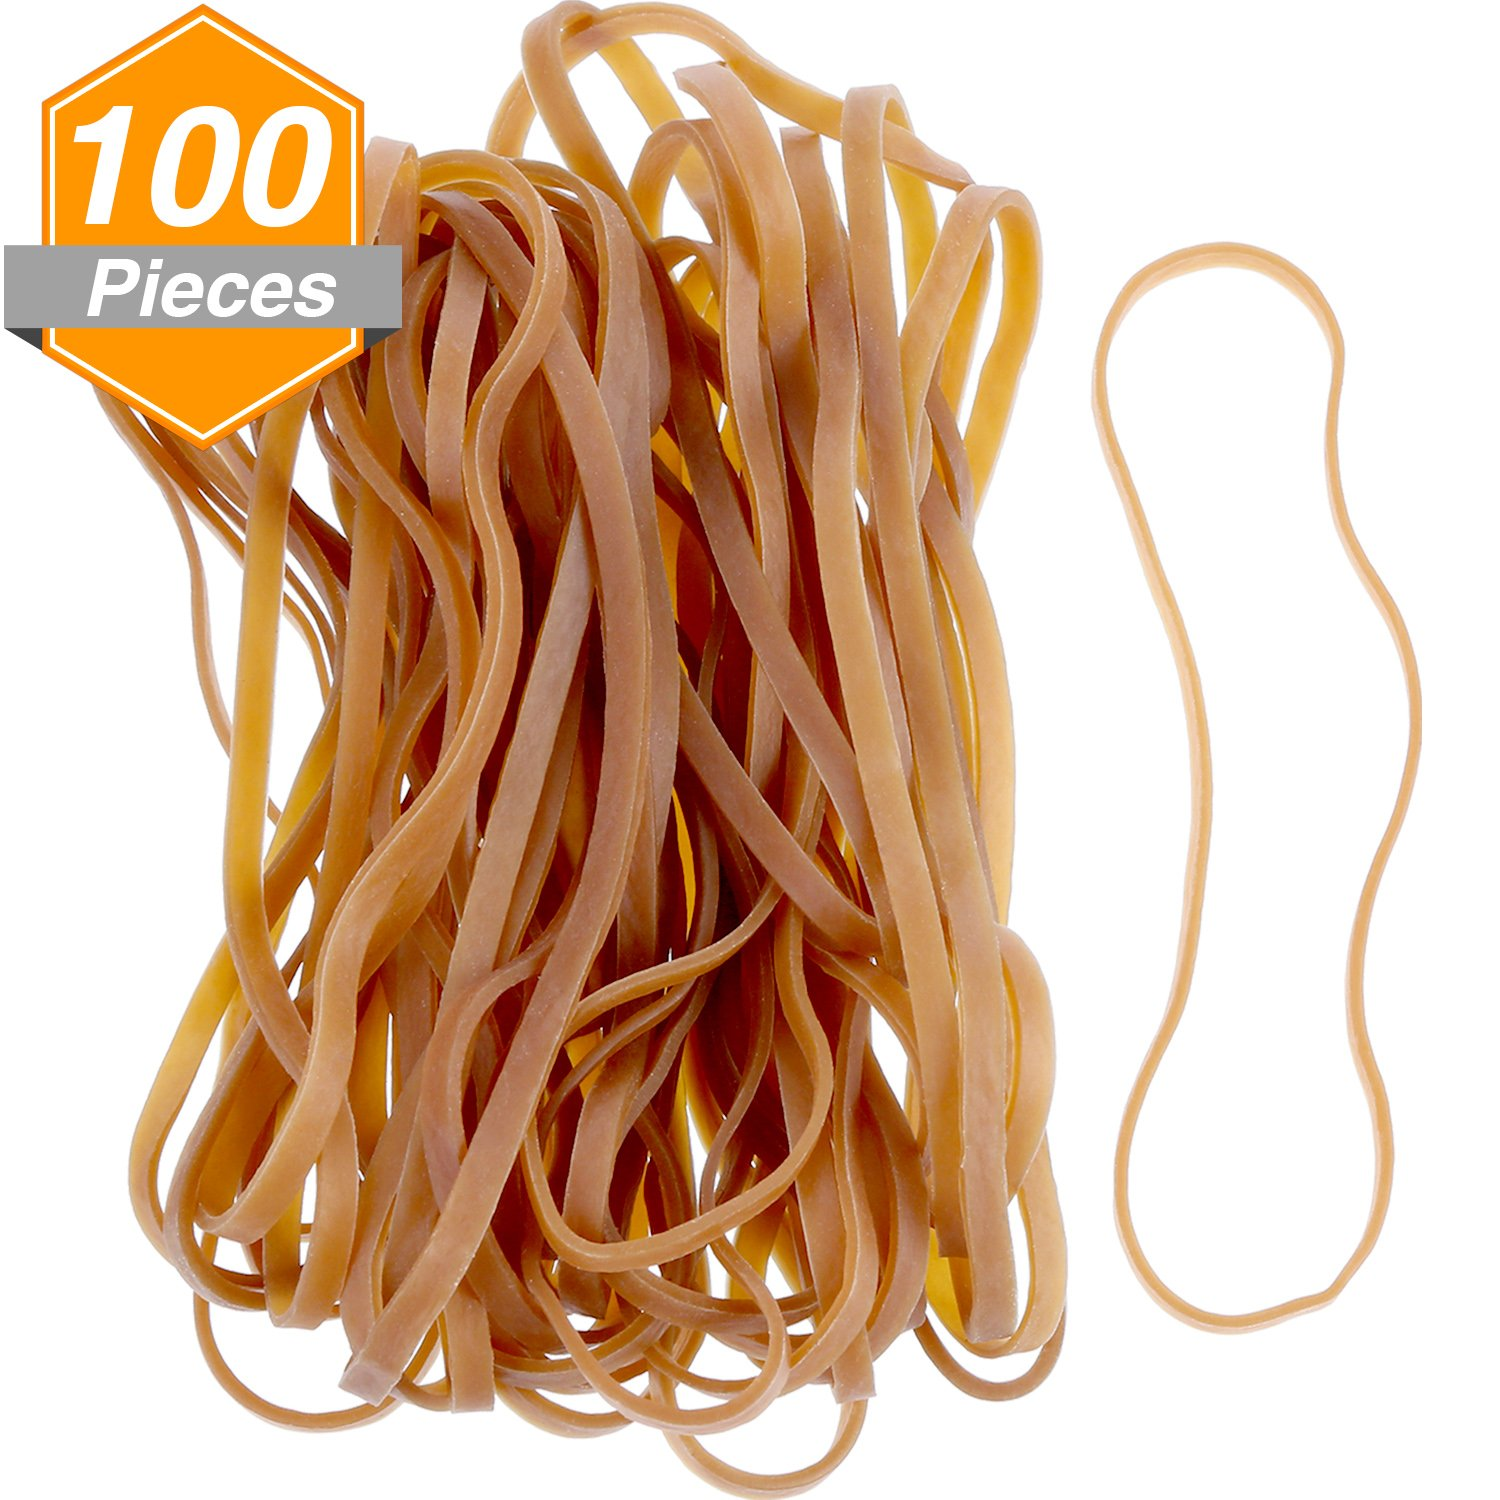 Jetec 100 Pieces Rubber Bands Large Elastic Bands for Office Home School Supplies, Dark Yellow (155 x 4 mm)